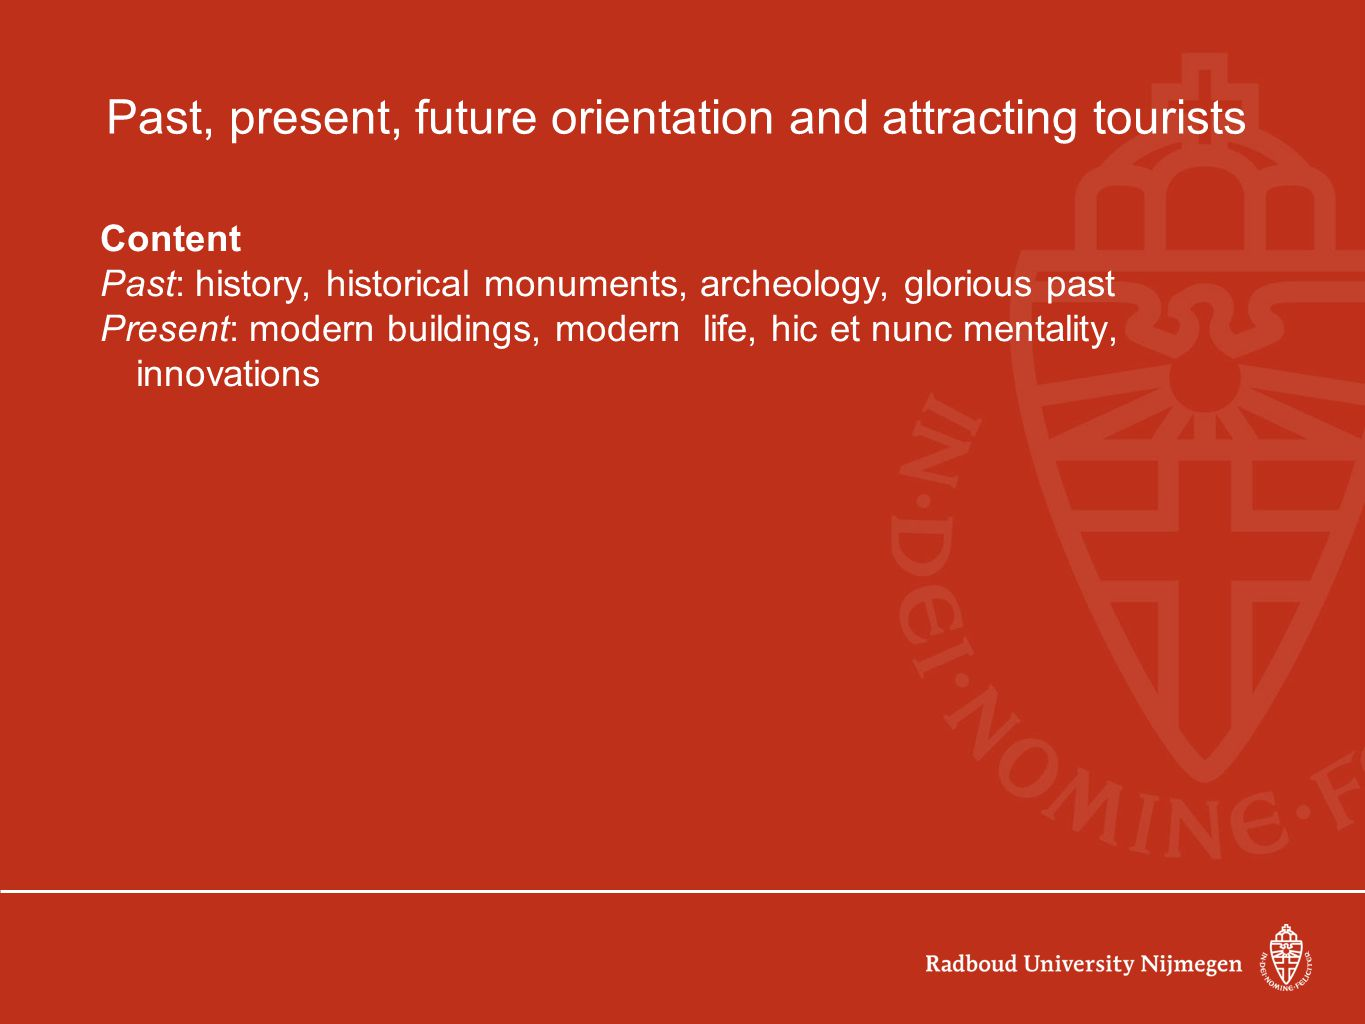 Past, present, future orientation and attracting tourists